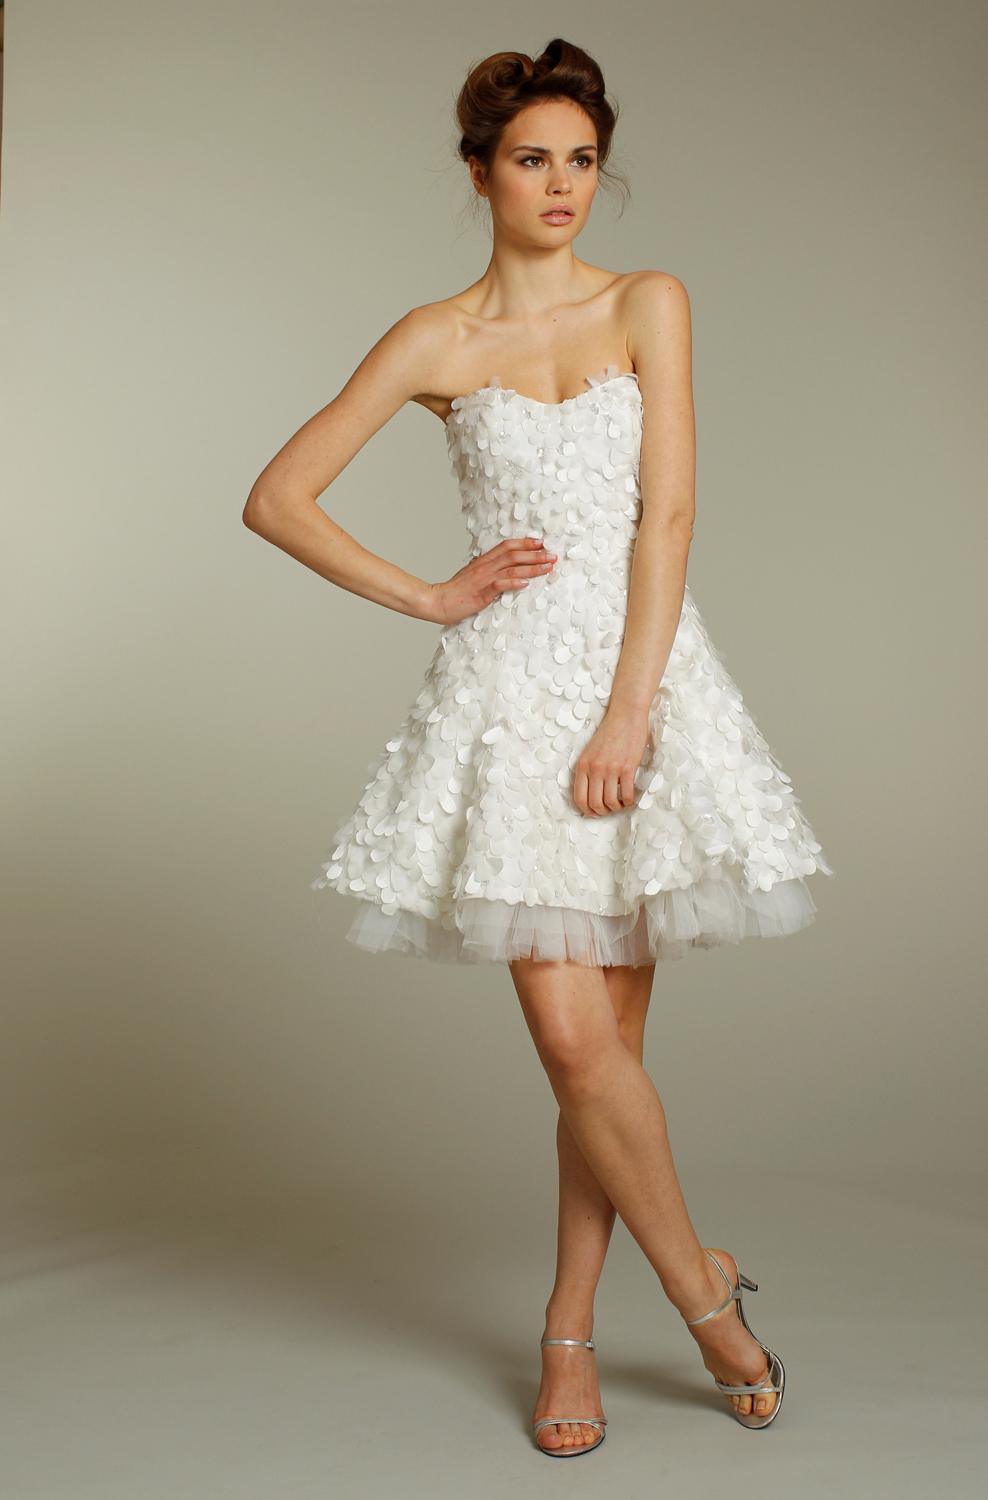 8162-fall-2011-wedding-dresses-wedding-recepion-short.full